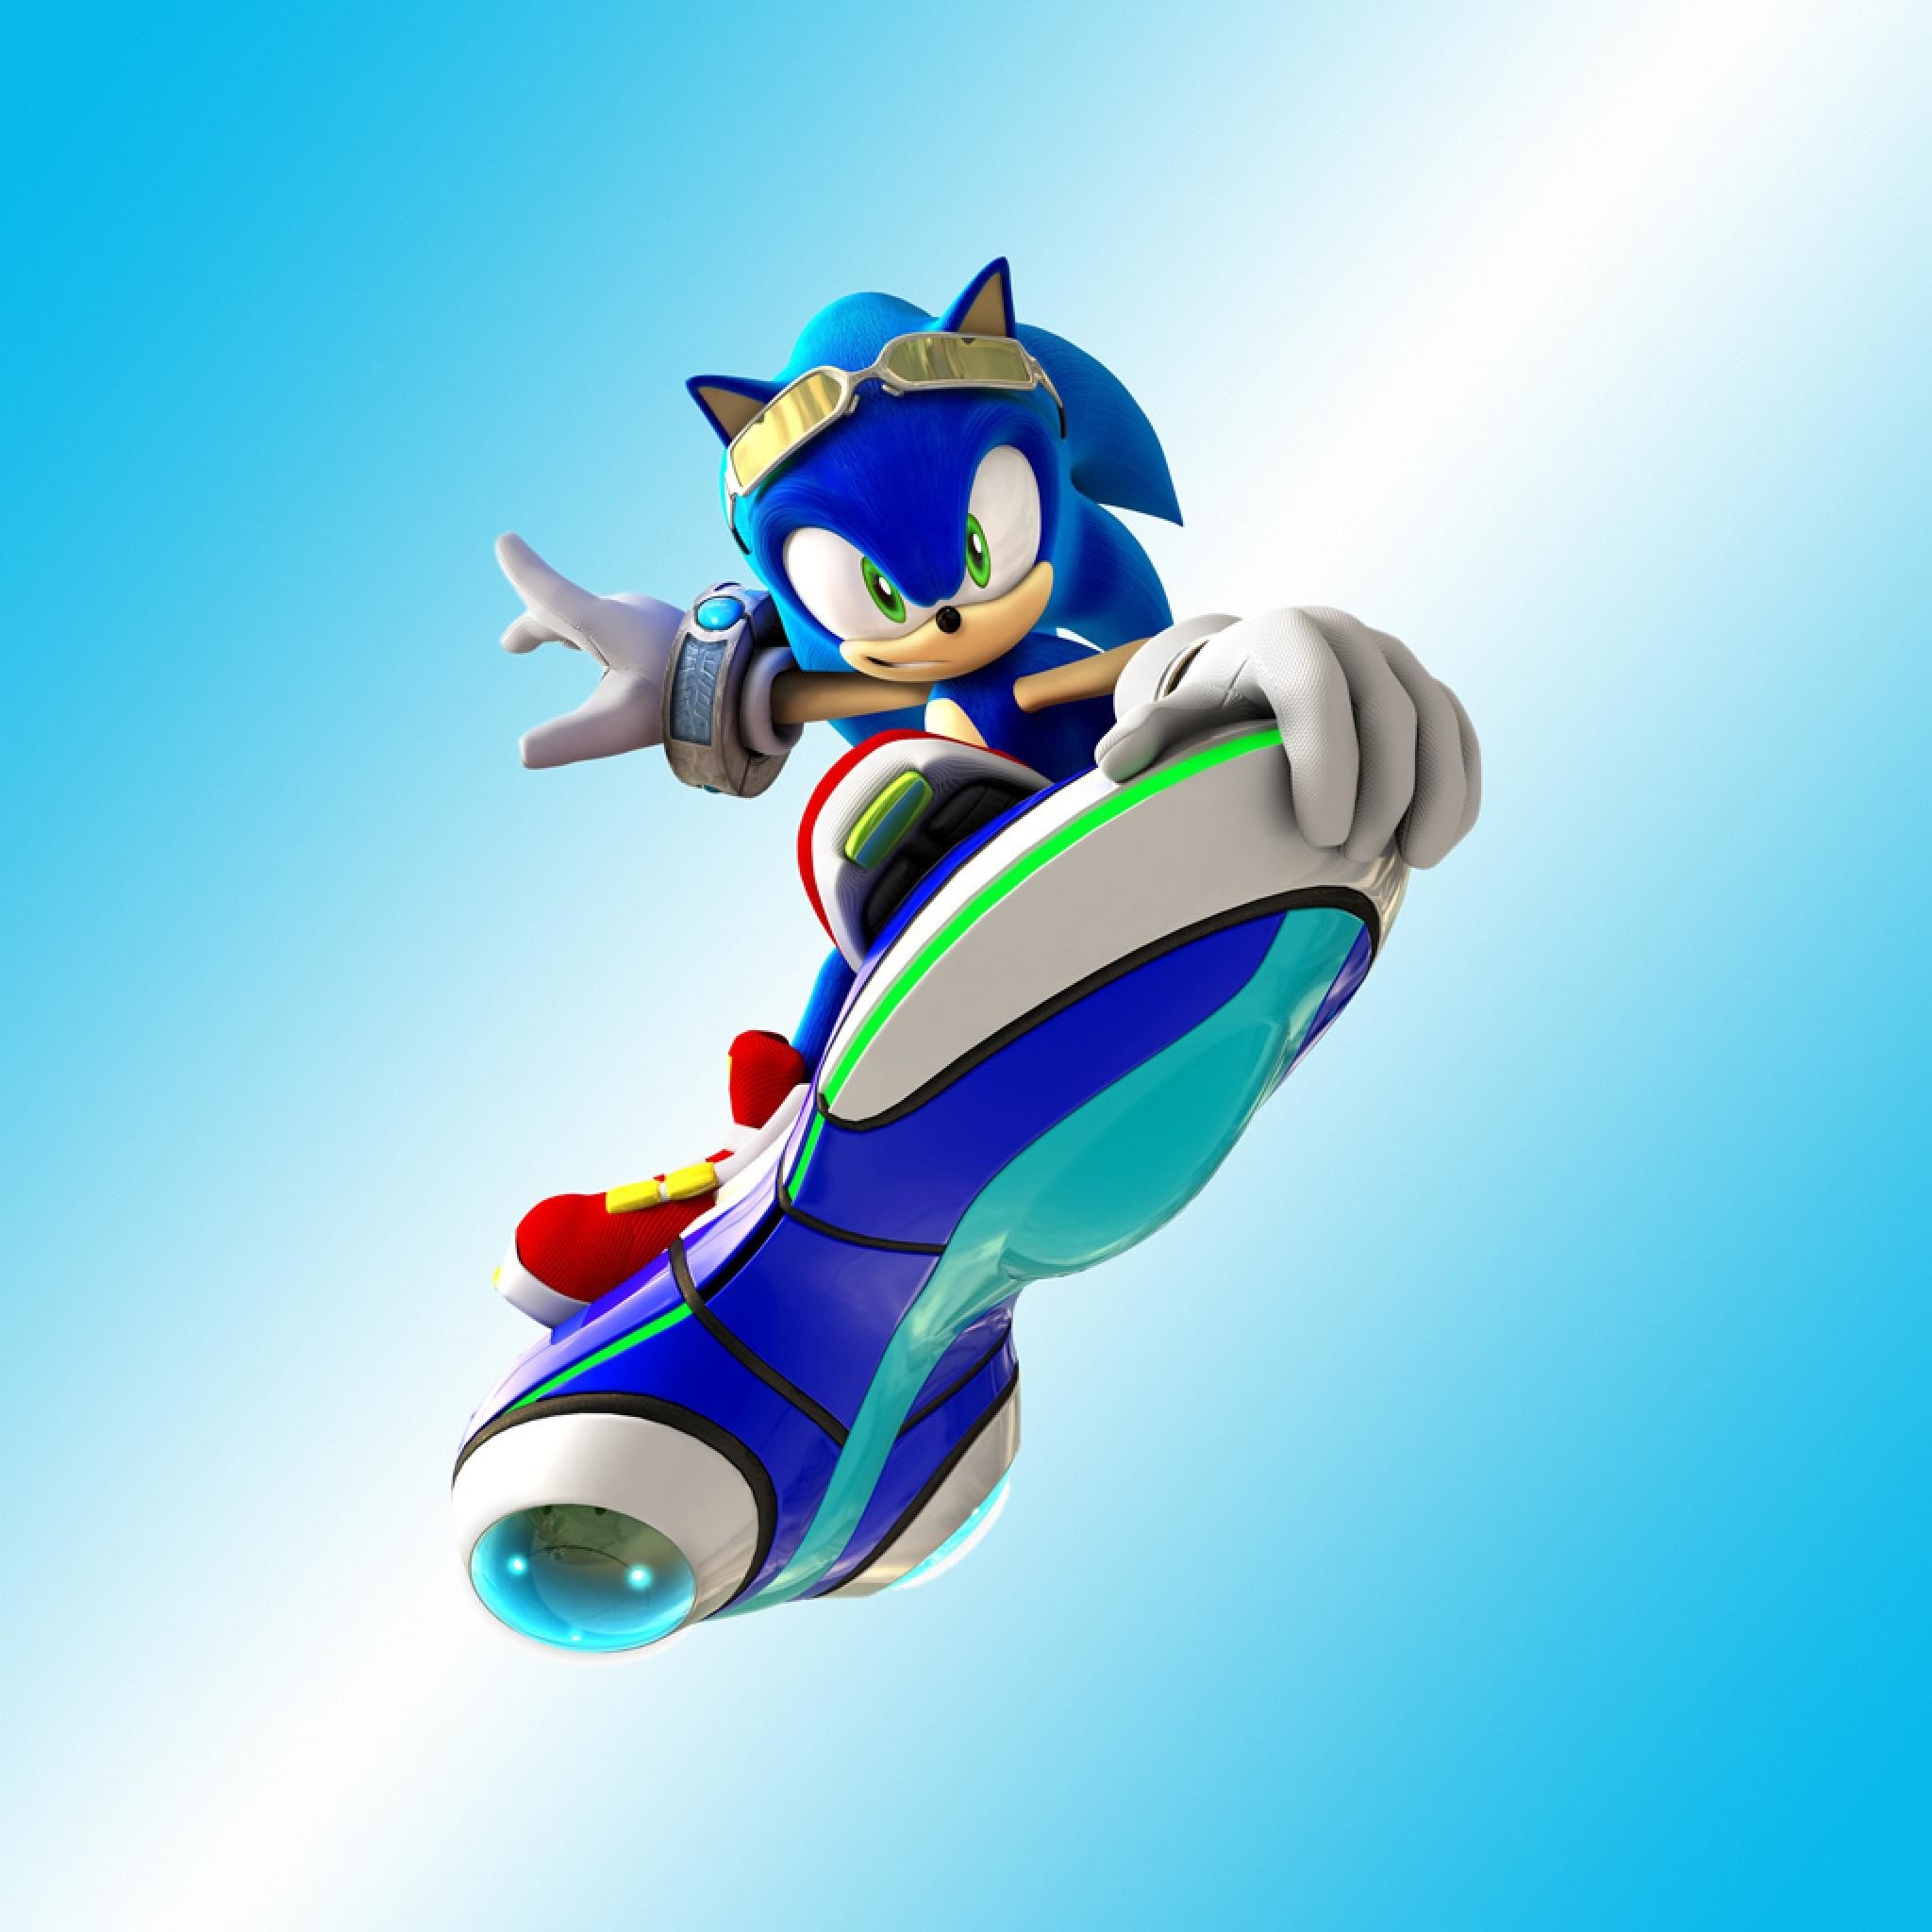 Classic Sonic Wallpaper HD (68+ images)